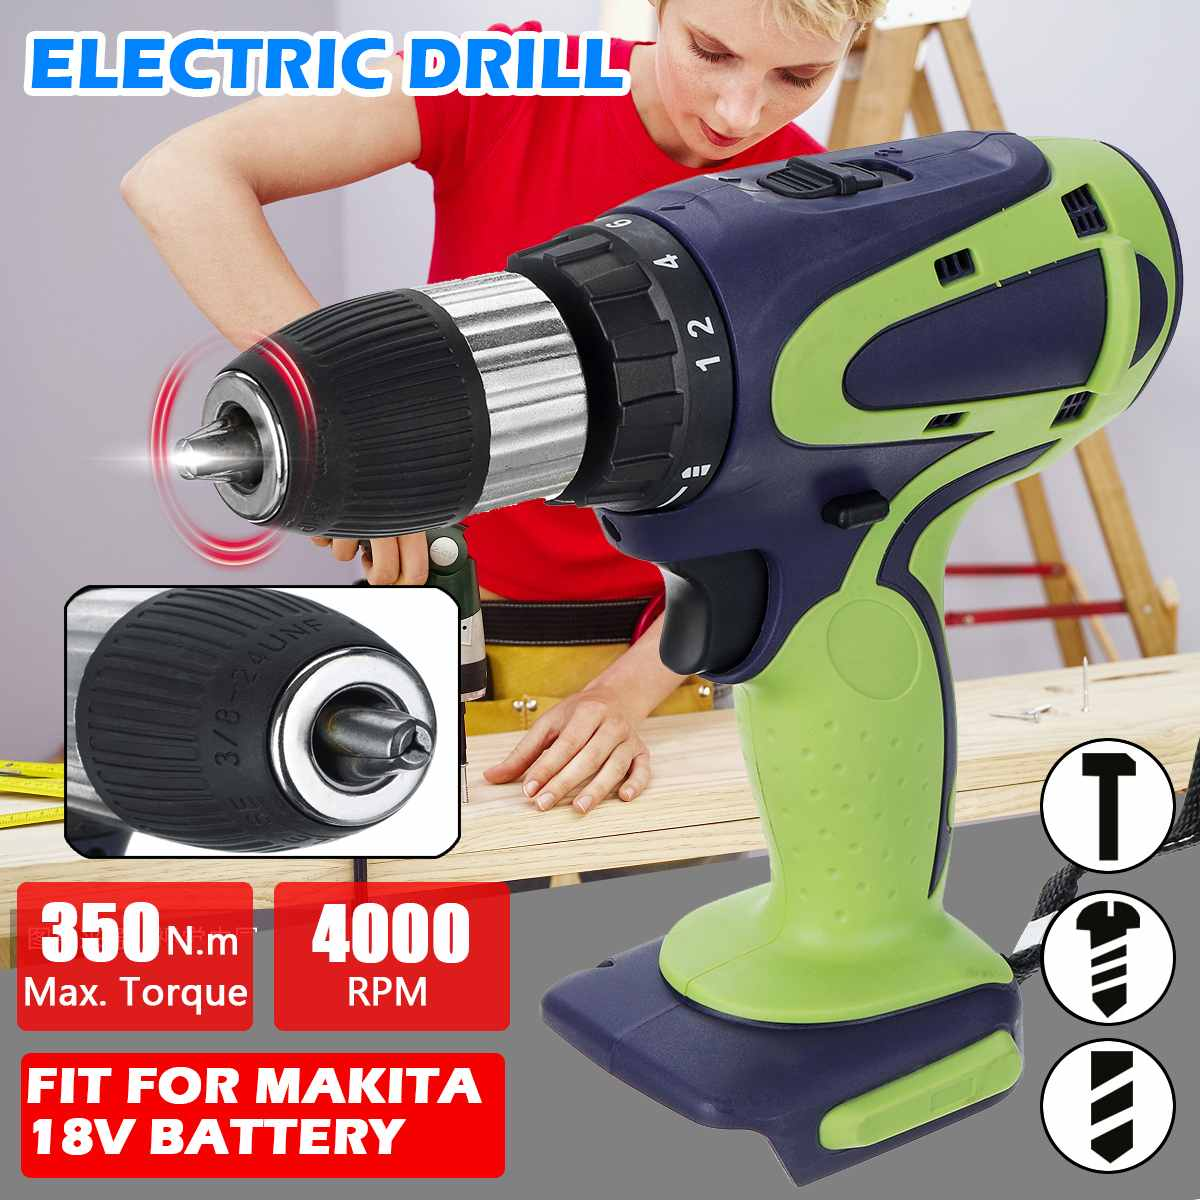 350N.m Electric Drill(no battery) power tools household DIY electric screwdriver ratchet wrench tools fit for Makita 18V Battery